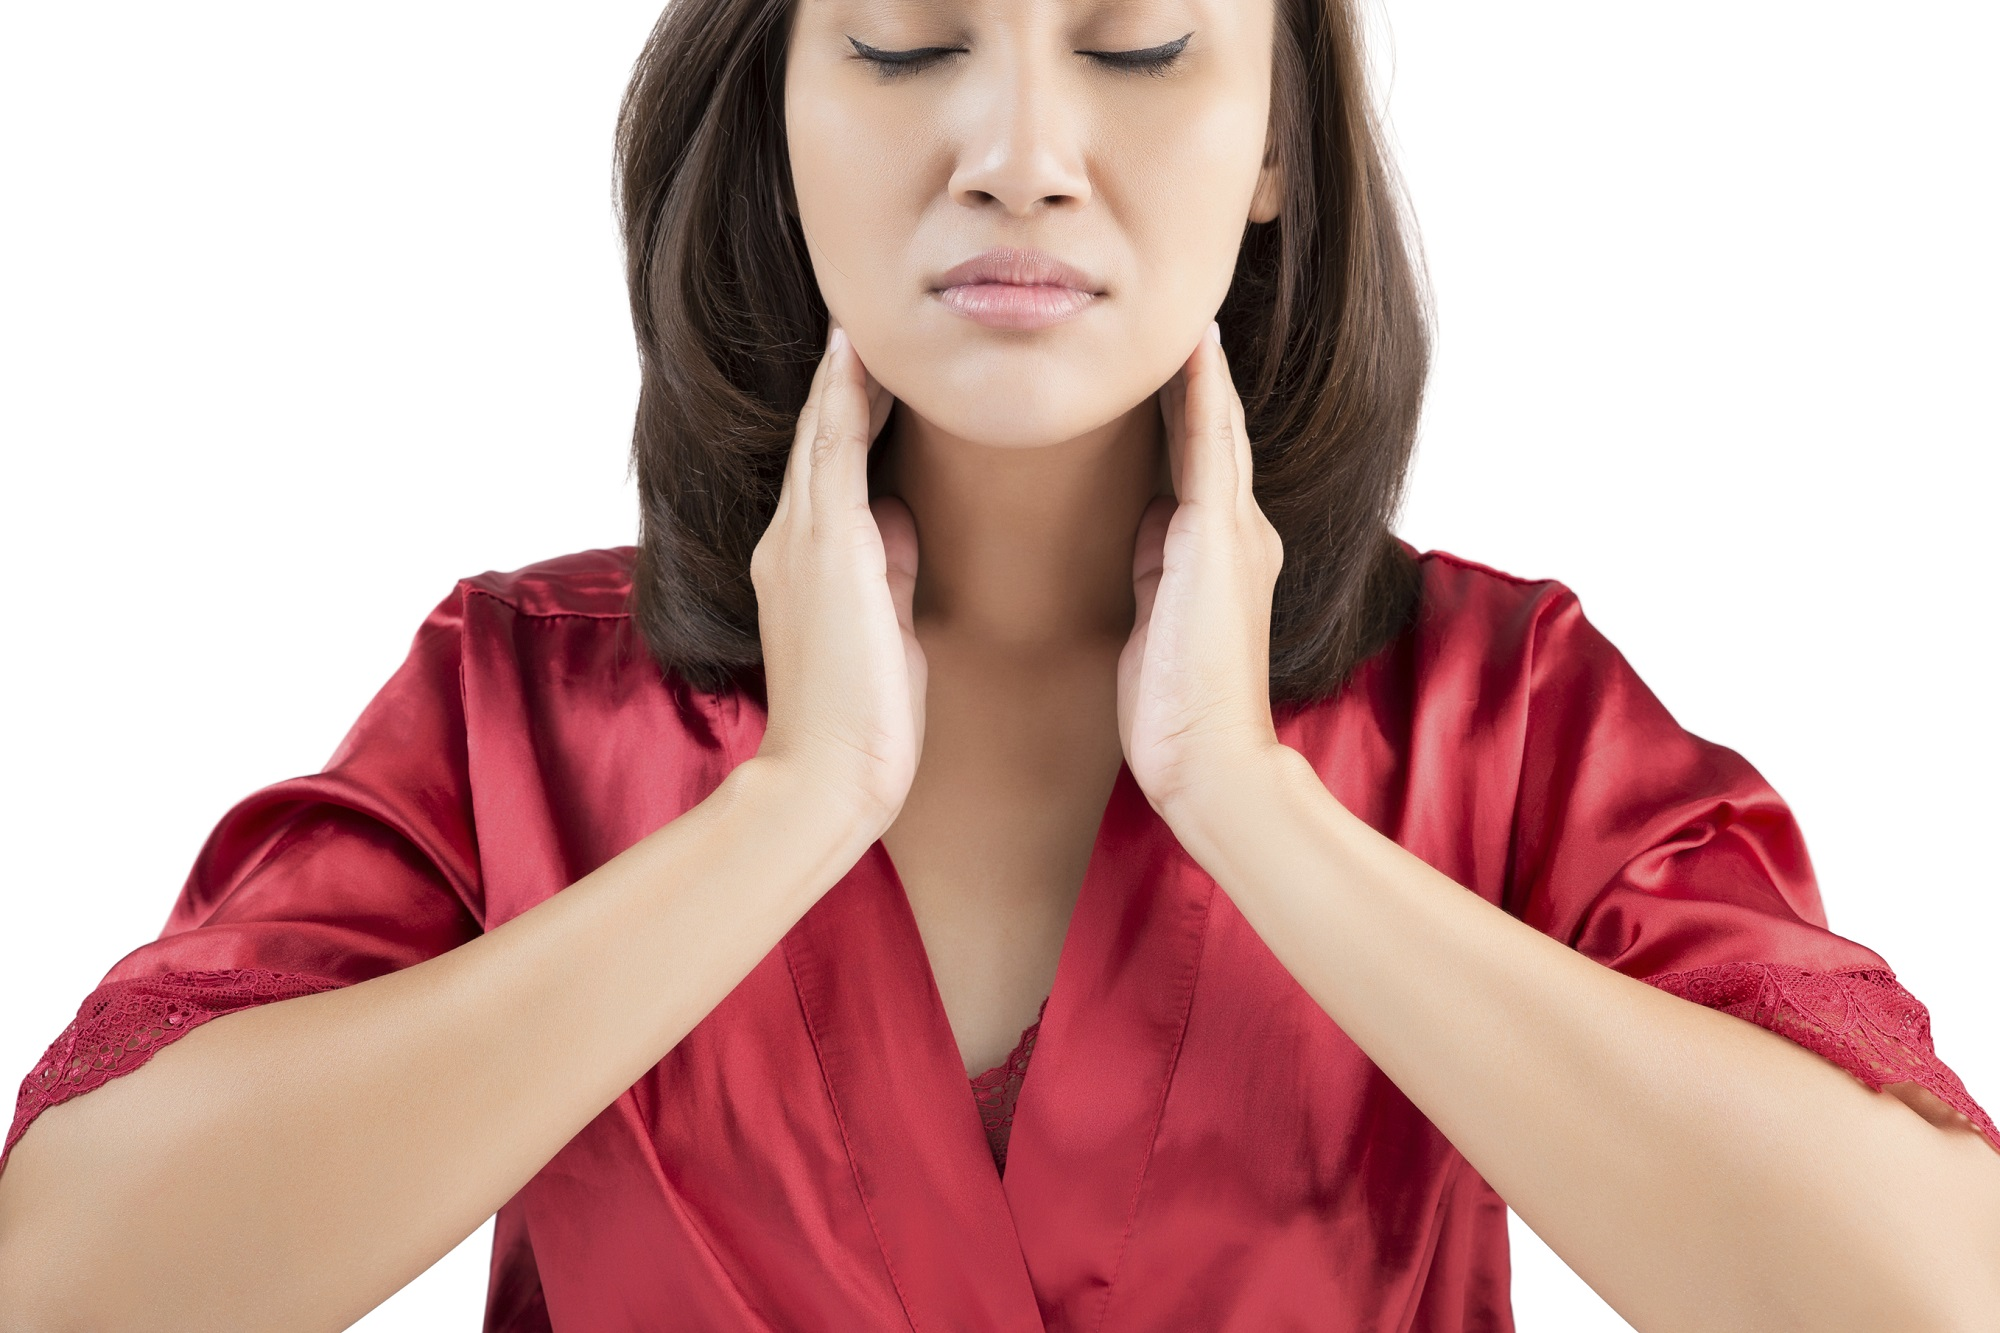 sore throat woman, Peak ENT and Voice Center, Denver Voice Clinic, Denver ENT, Colorado ENT, Denver hearing specialists, colorado ent doctor, ent rhinoplasty specialist, Peak ENT, vocal cord dysfunction